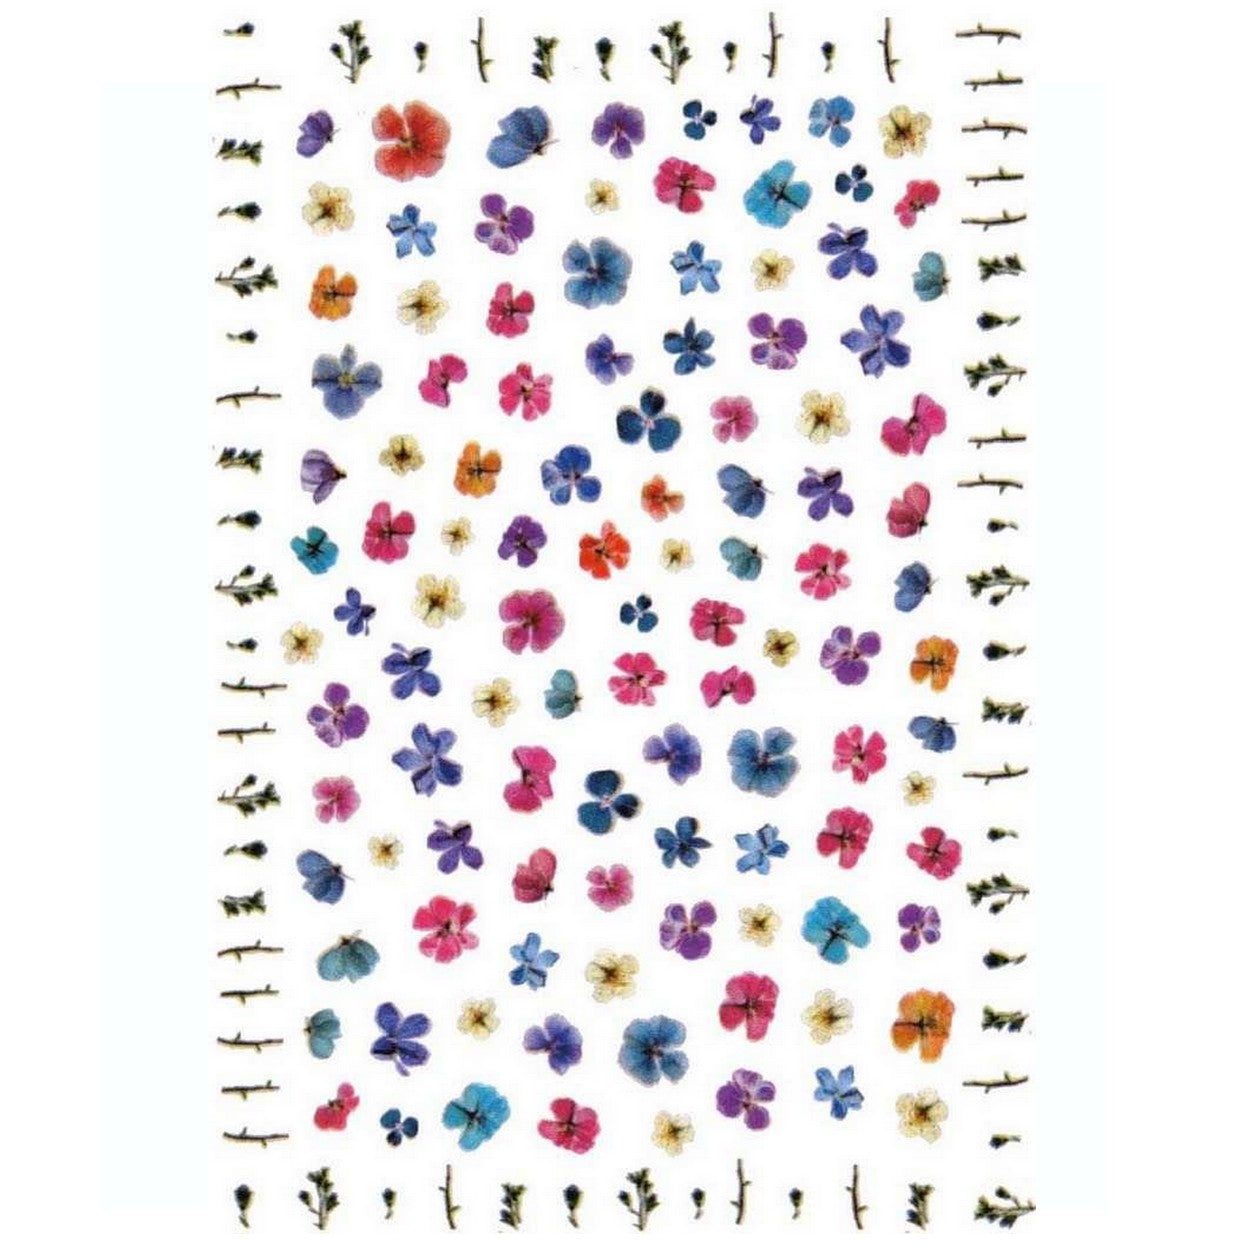 Floral Delicate Dried Flowers Variety Nail Stickers